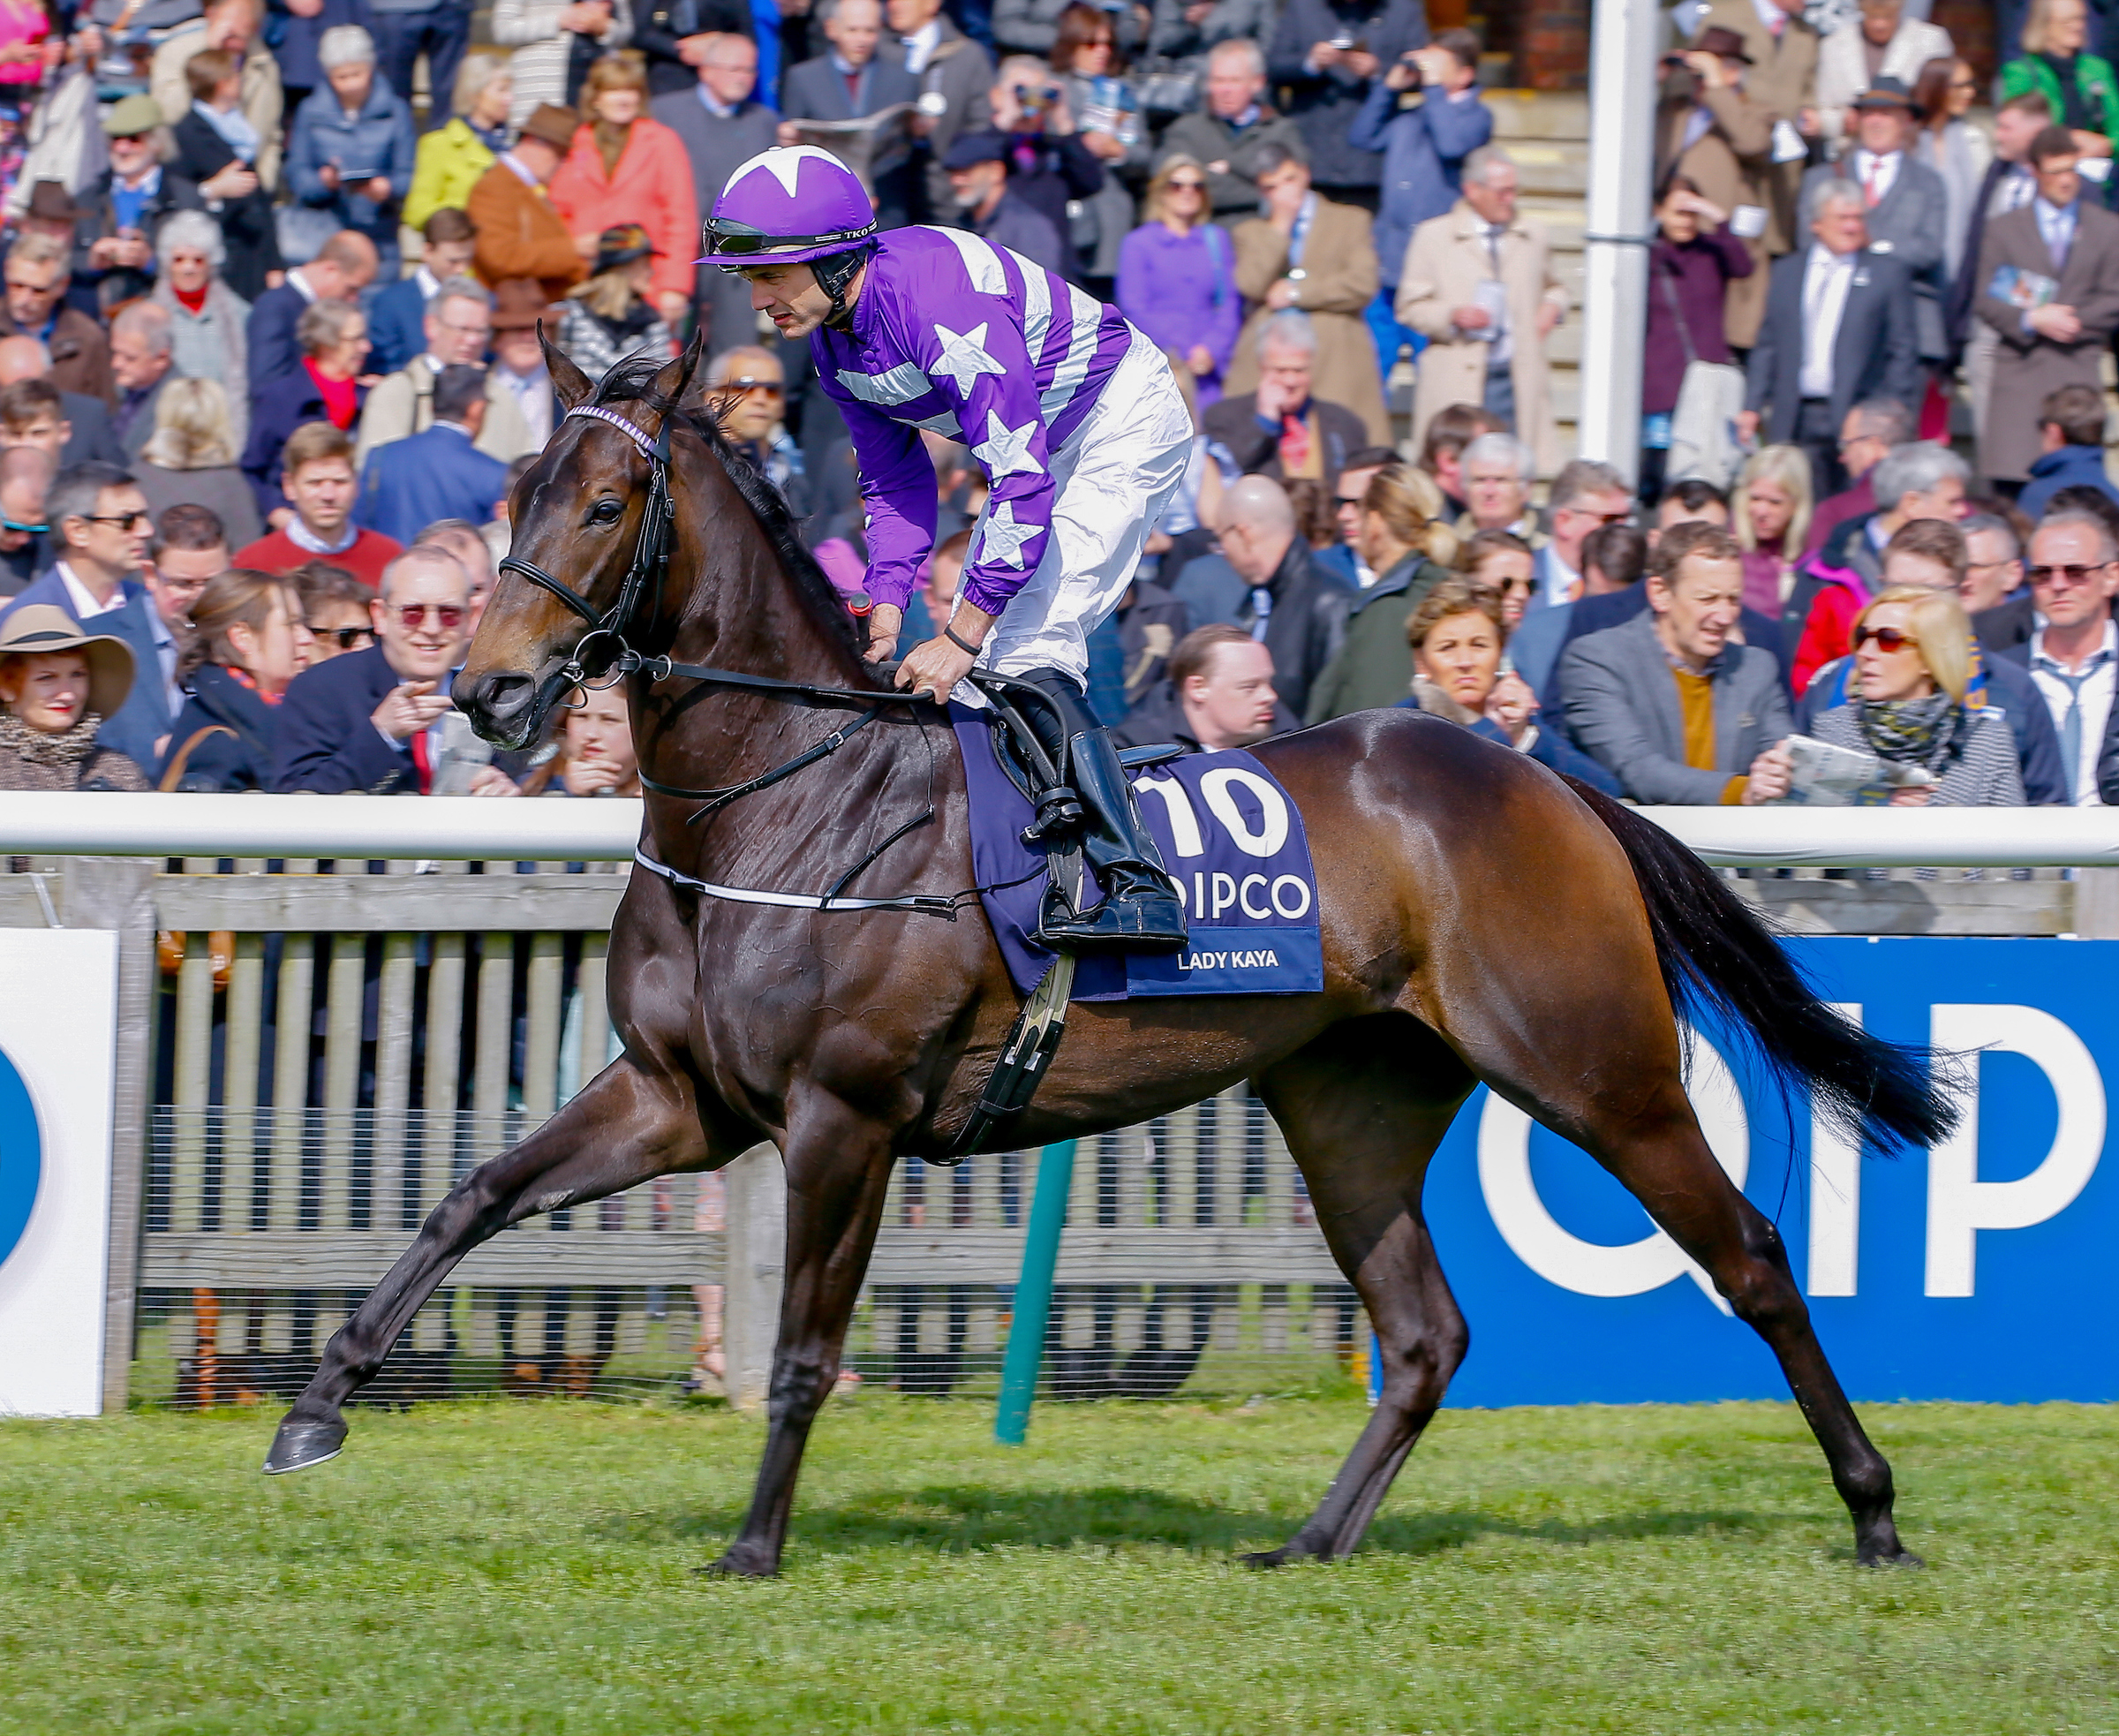 Lady Kaya finished runner-up in the 1000 Guineas and had been a leading fancy for Royal Ascot (Focusonracing)